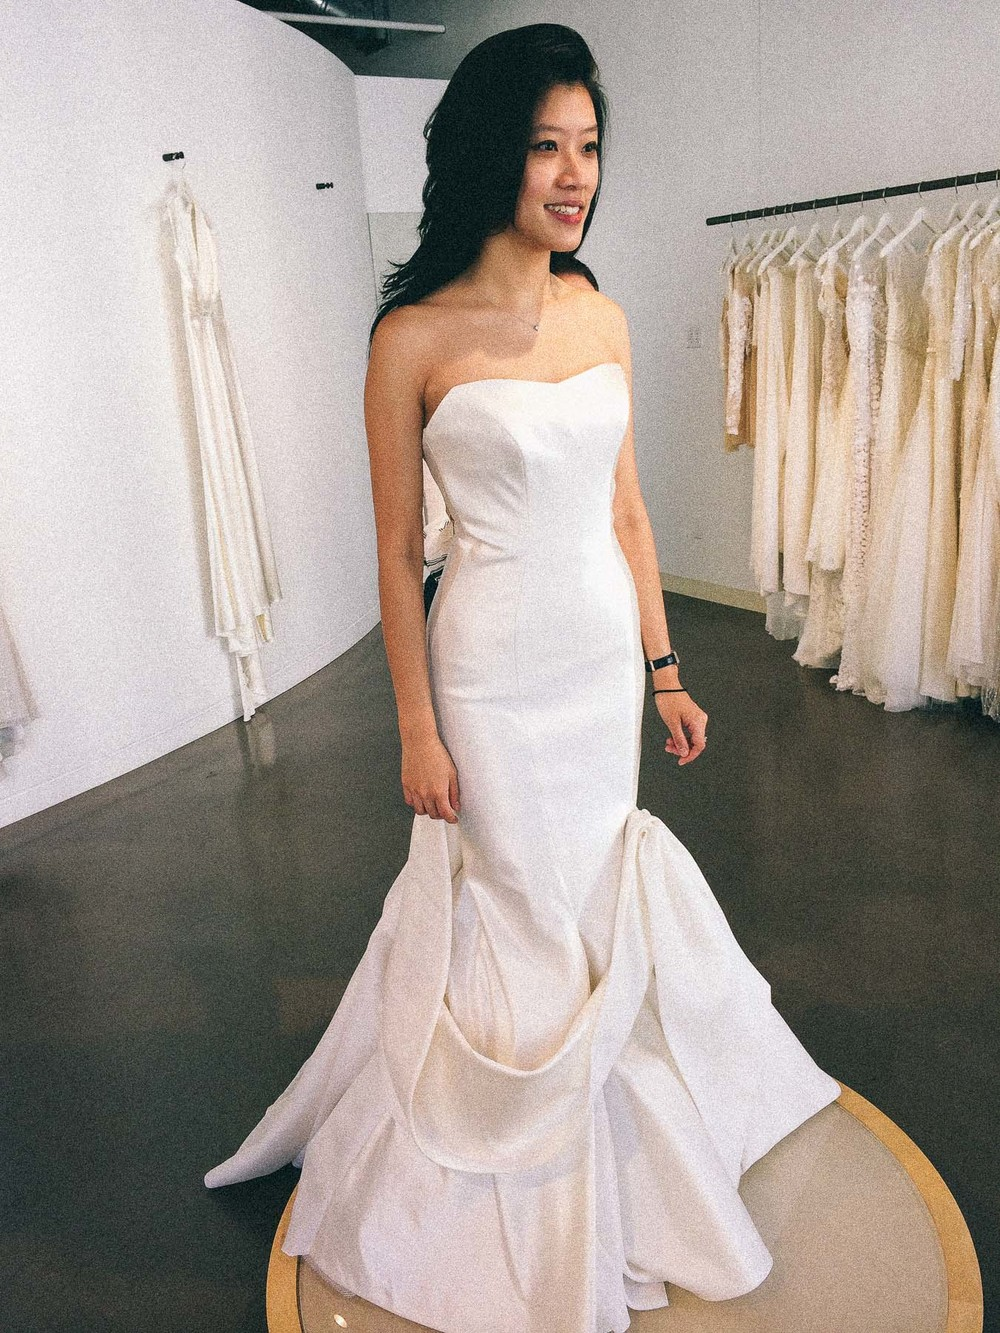 Gallery Of Wedding Dress Shopping With The Fiance U Jenny Musing Traditions